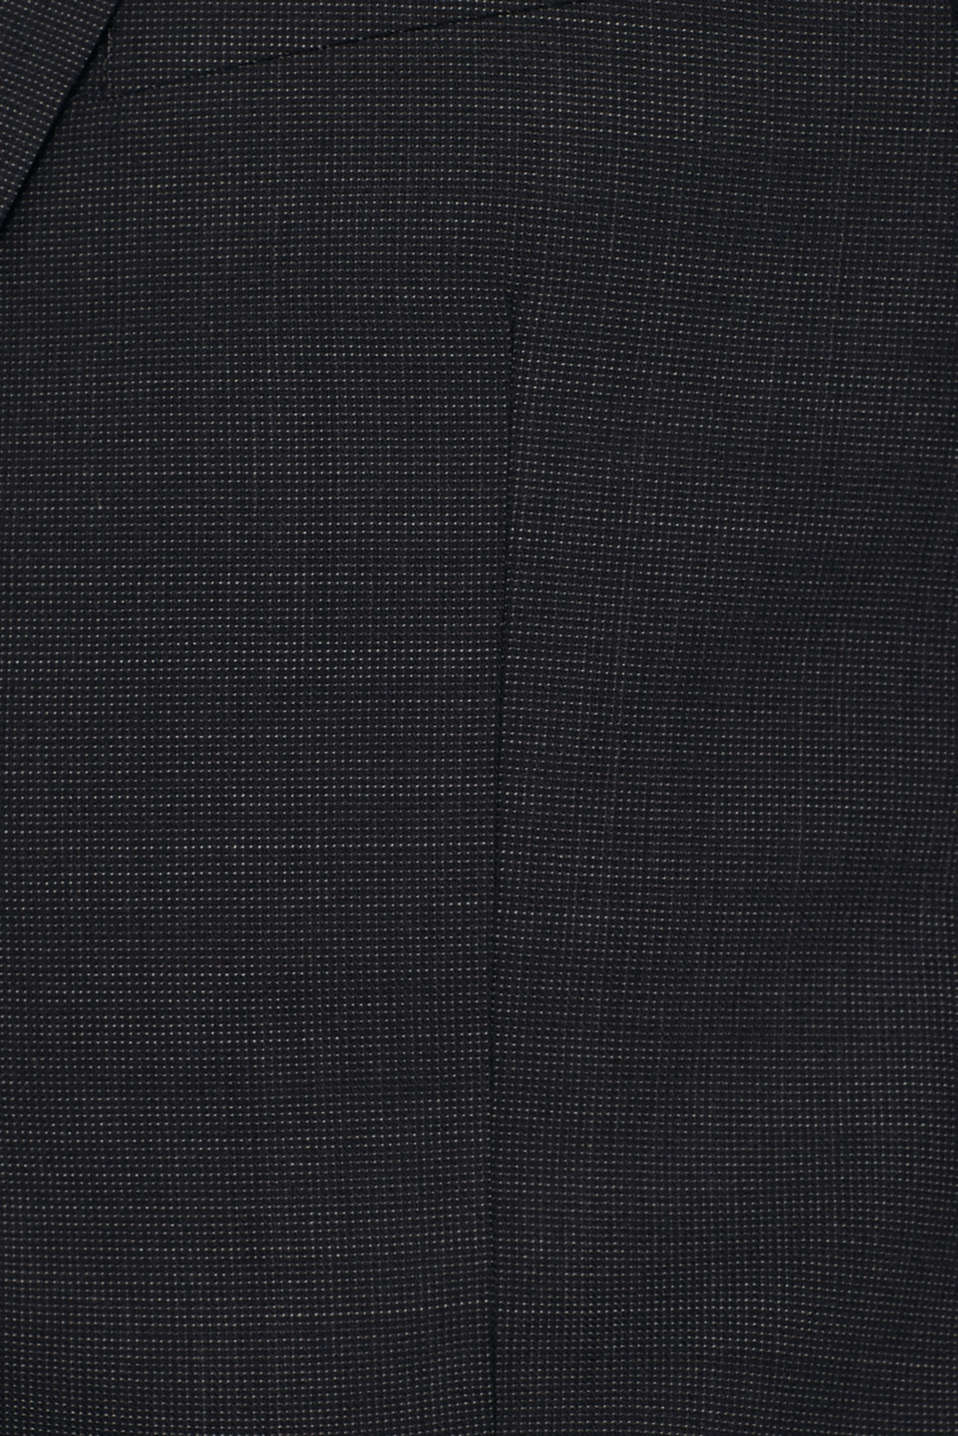 Blazers suit, ANTHRACITE, detail image number 4